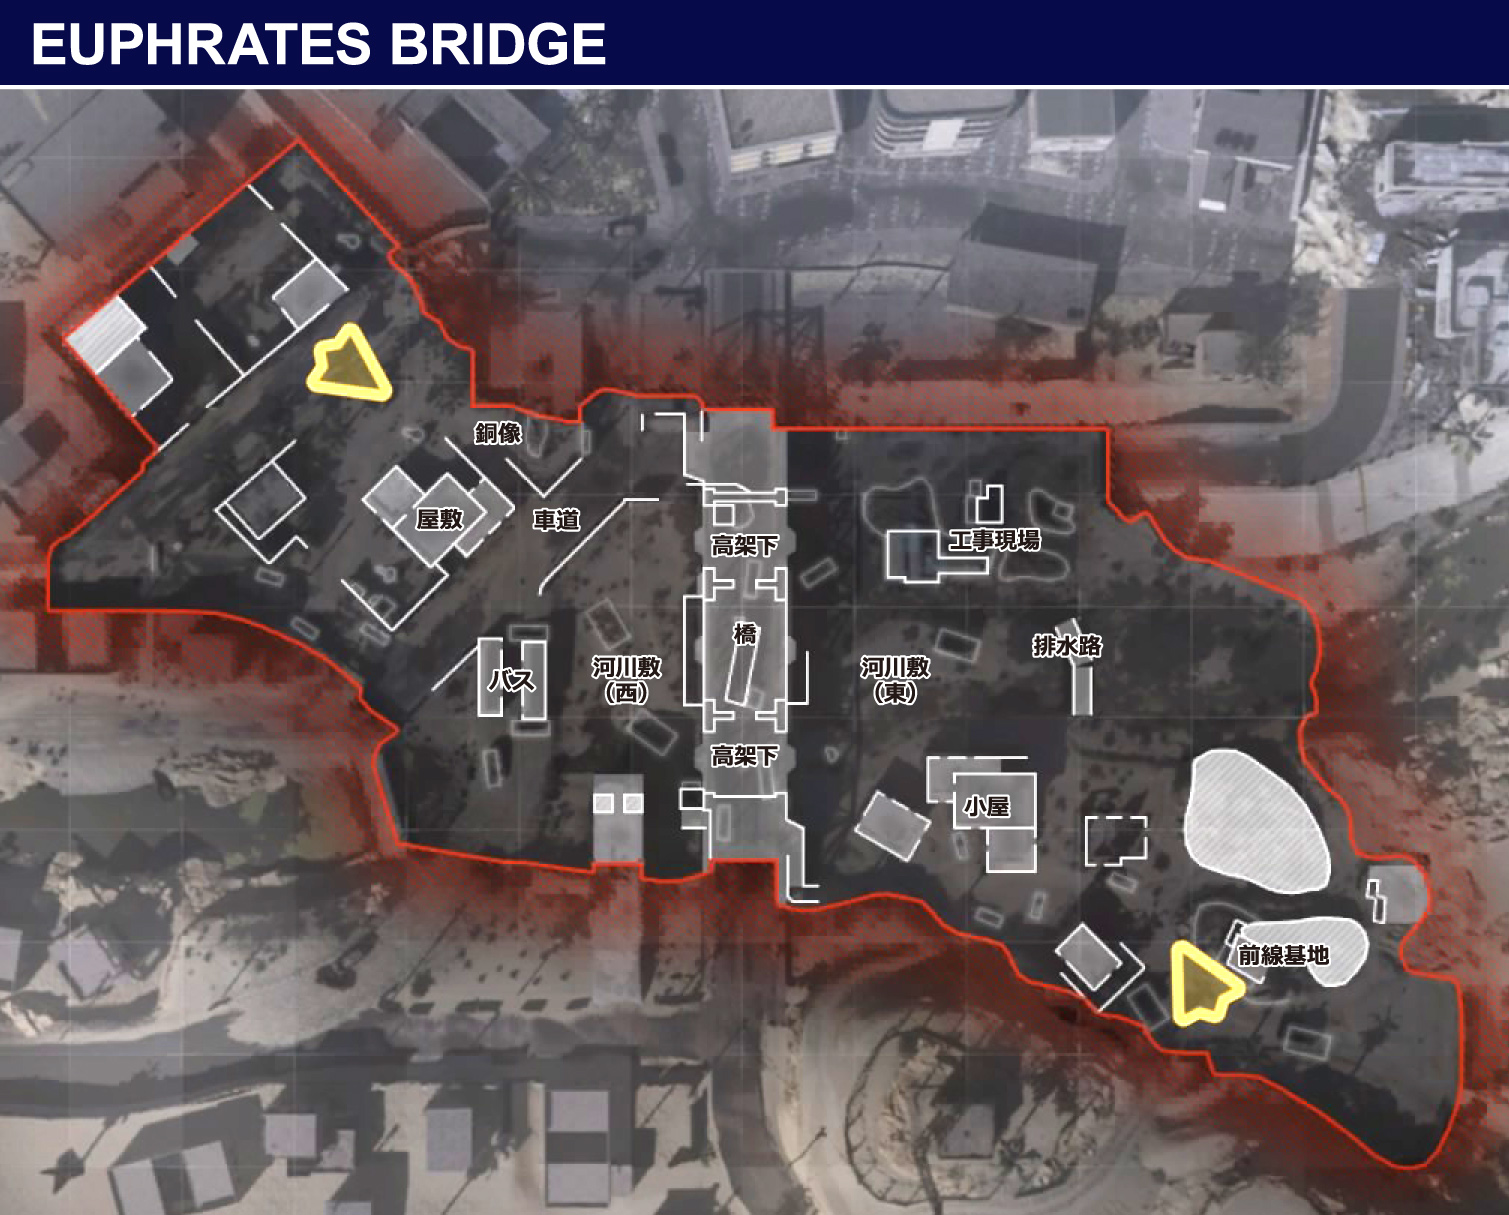 EUPHRATES-BRIDGE-map